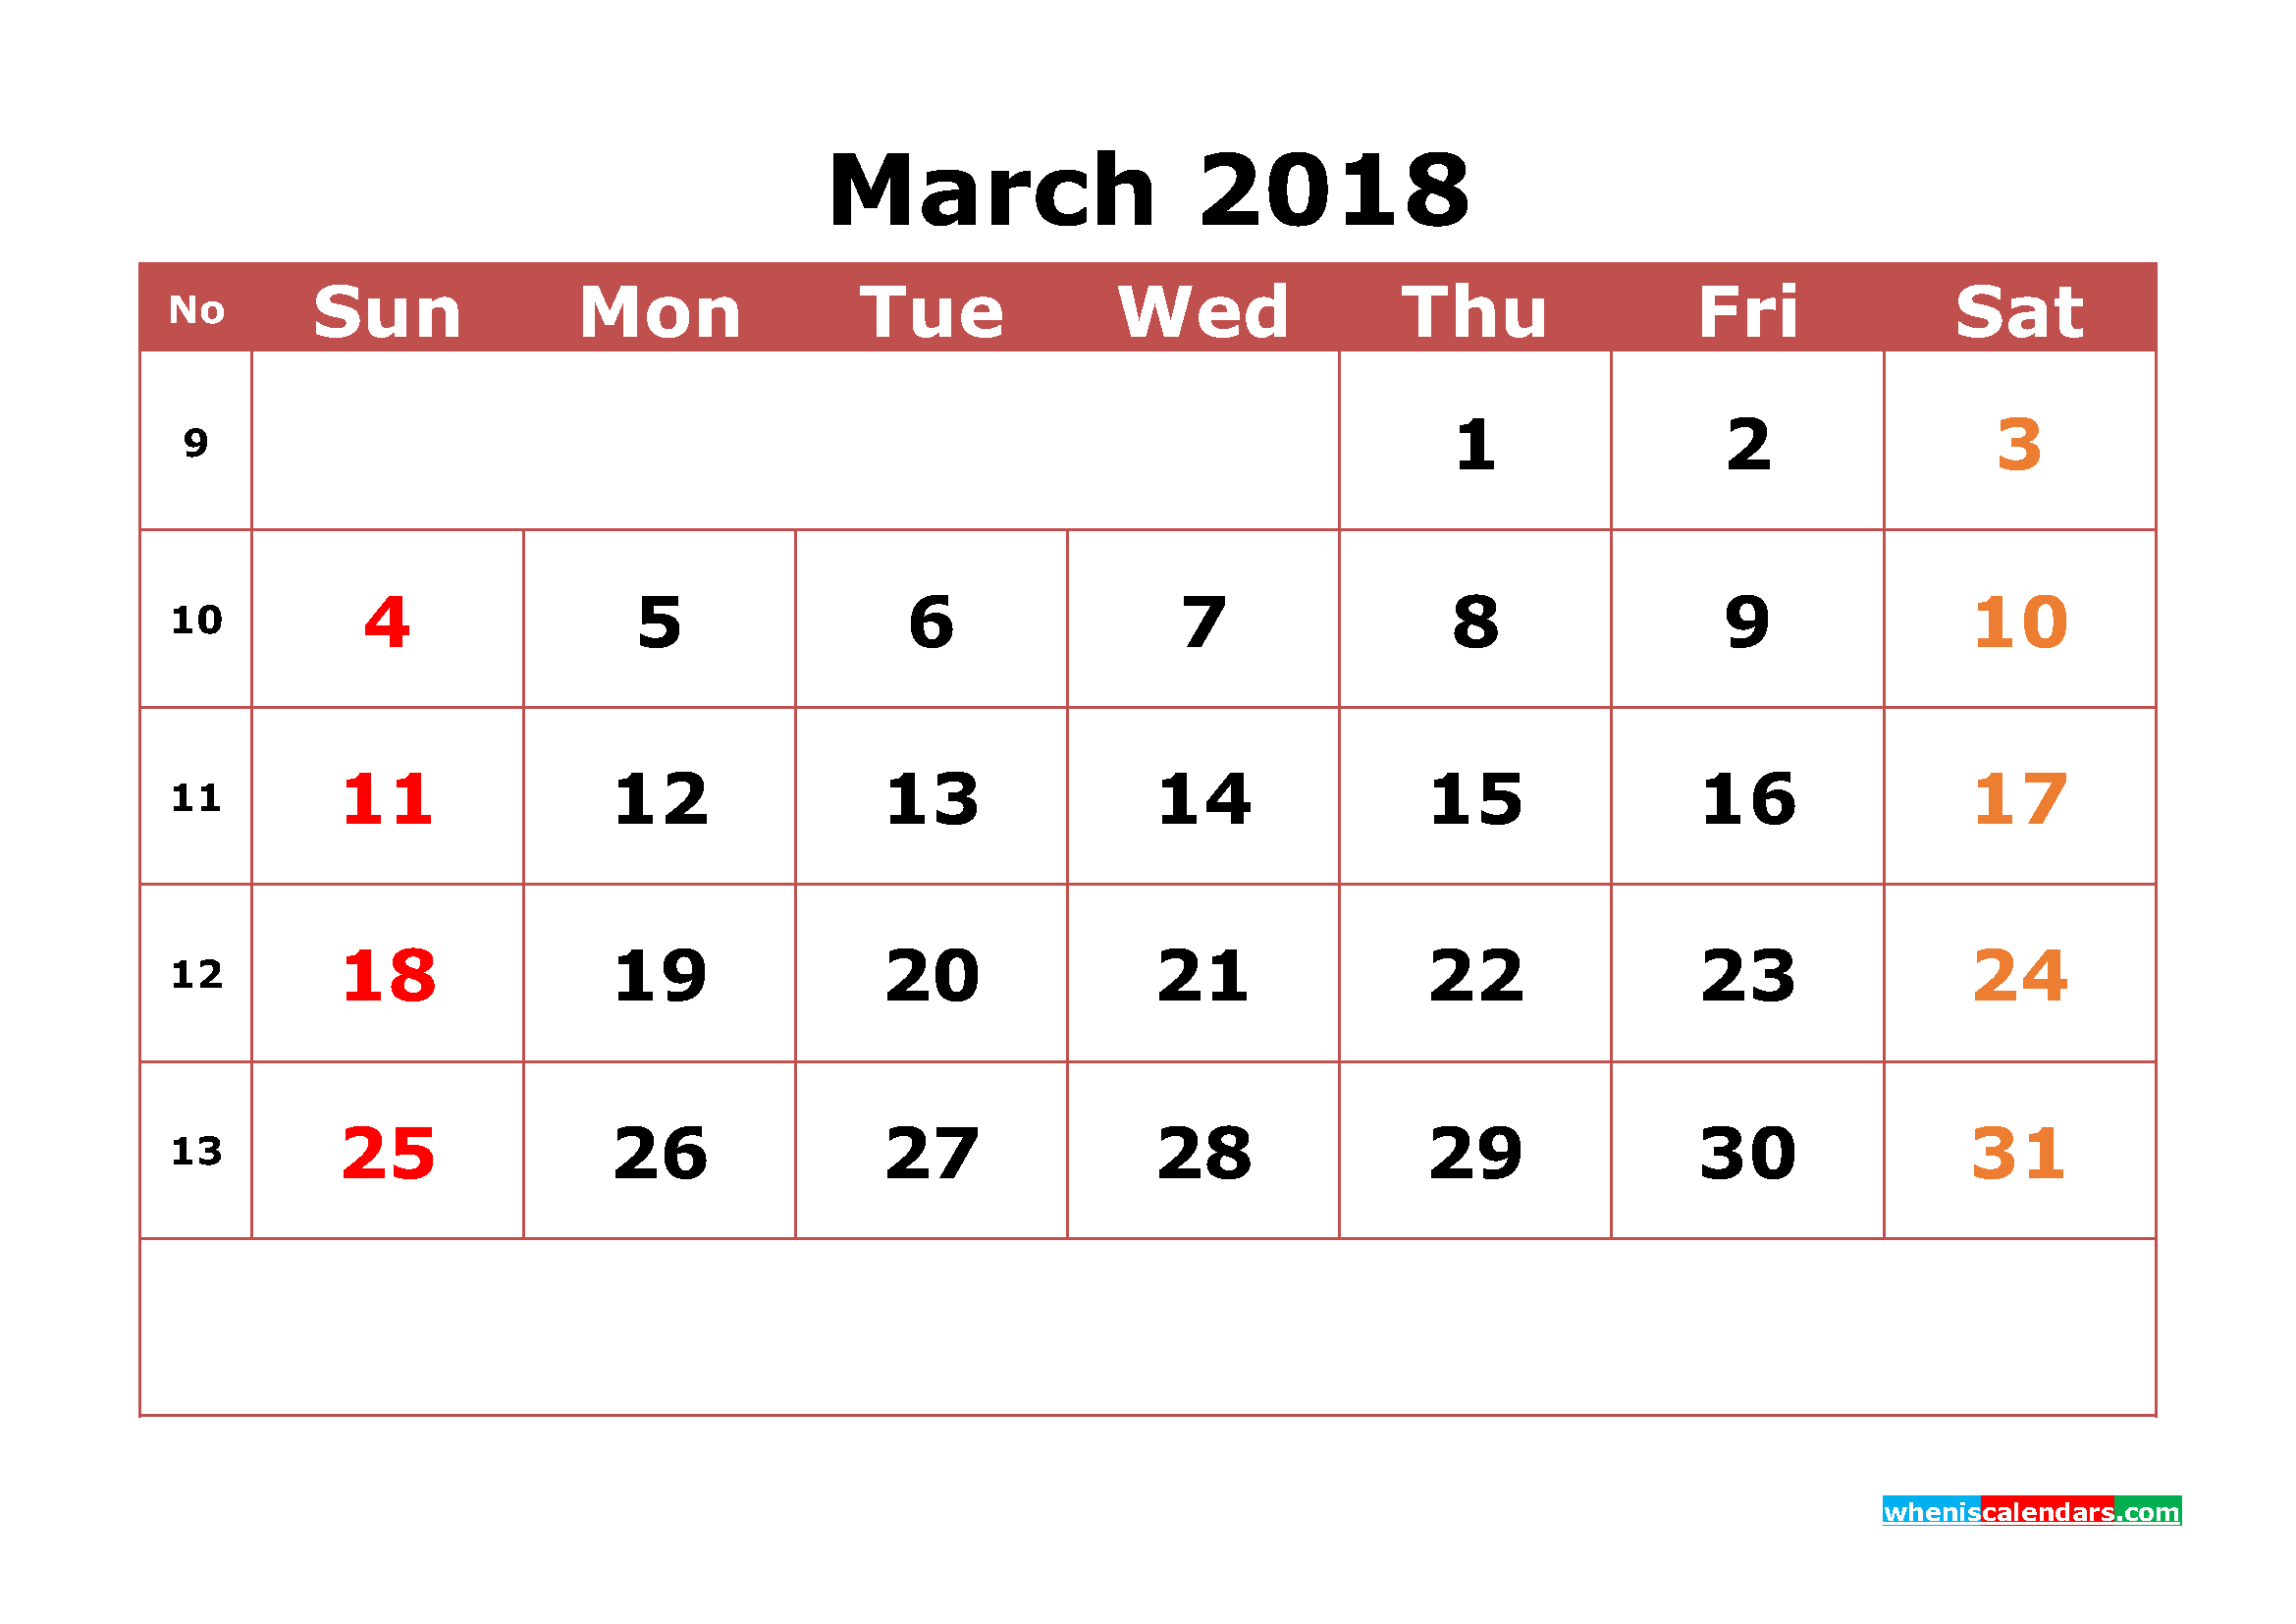 March 2018 Calendar Printable with Week Numbers Image